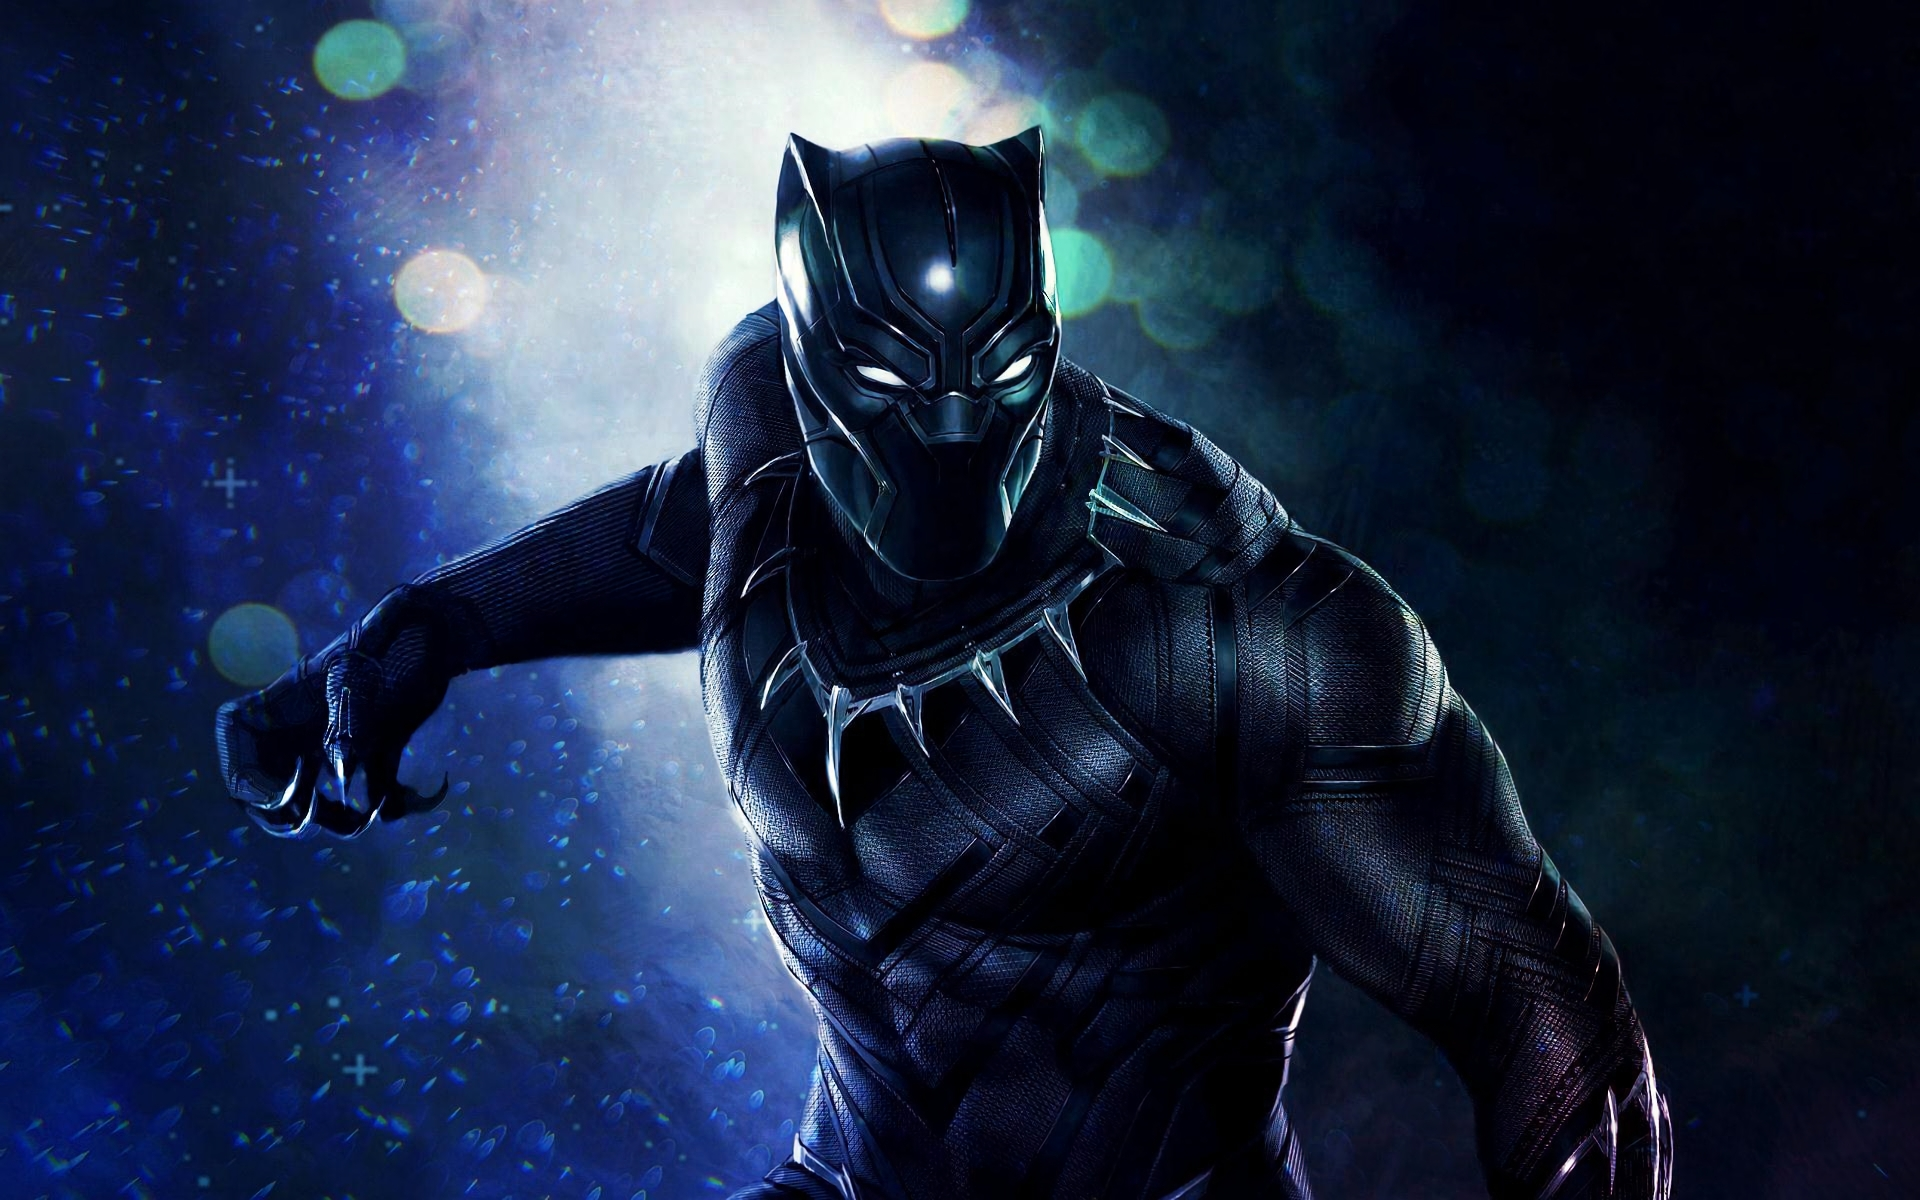 10 Top Hd Black Panther Wallpaper FULL HD 1920×1080 For PC Desktop